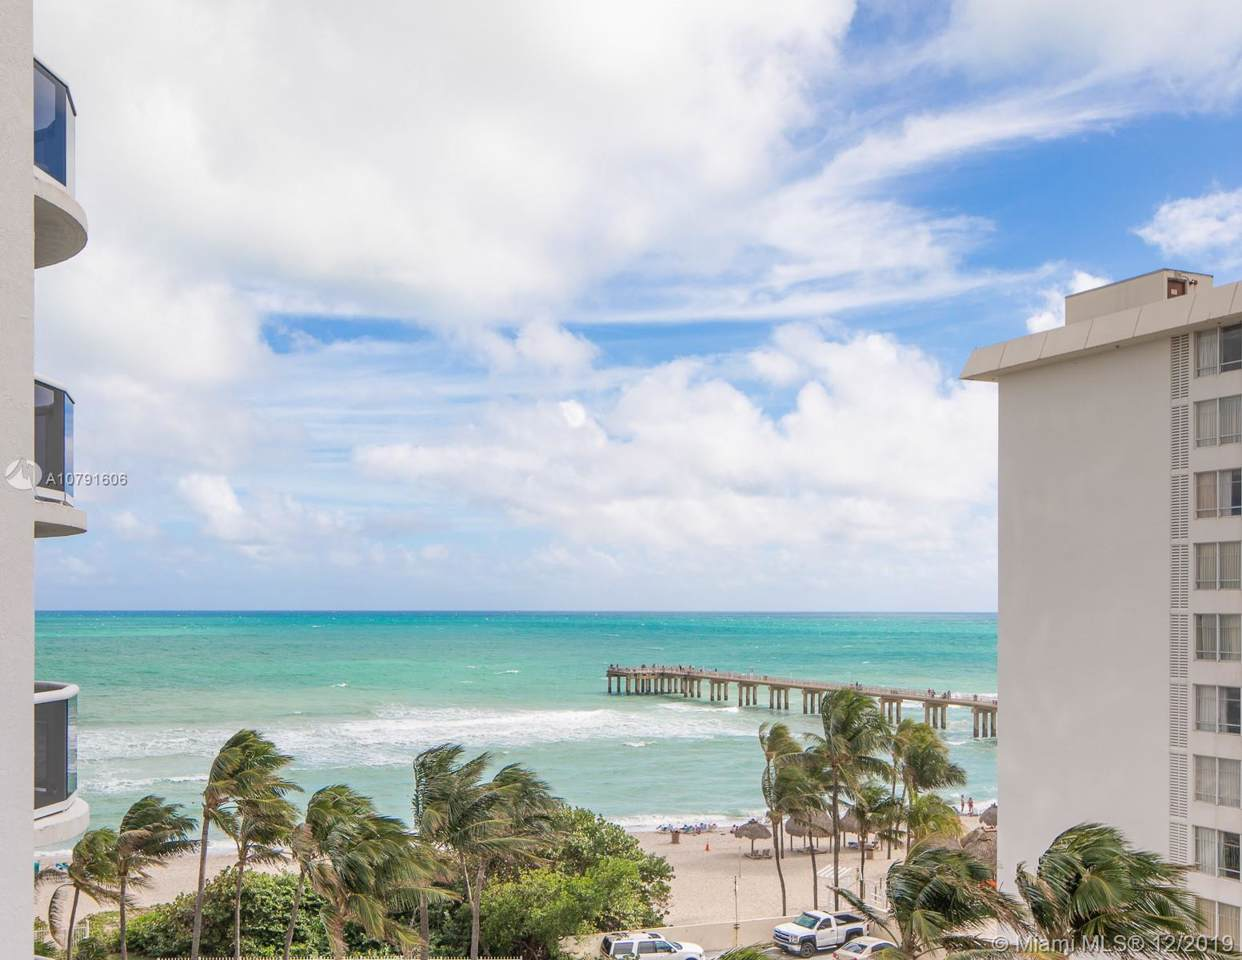 16711 Collins Ave - Photo 1